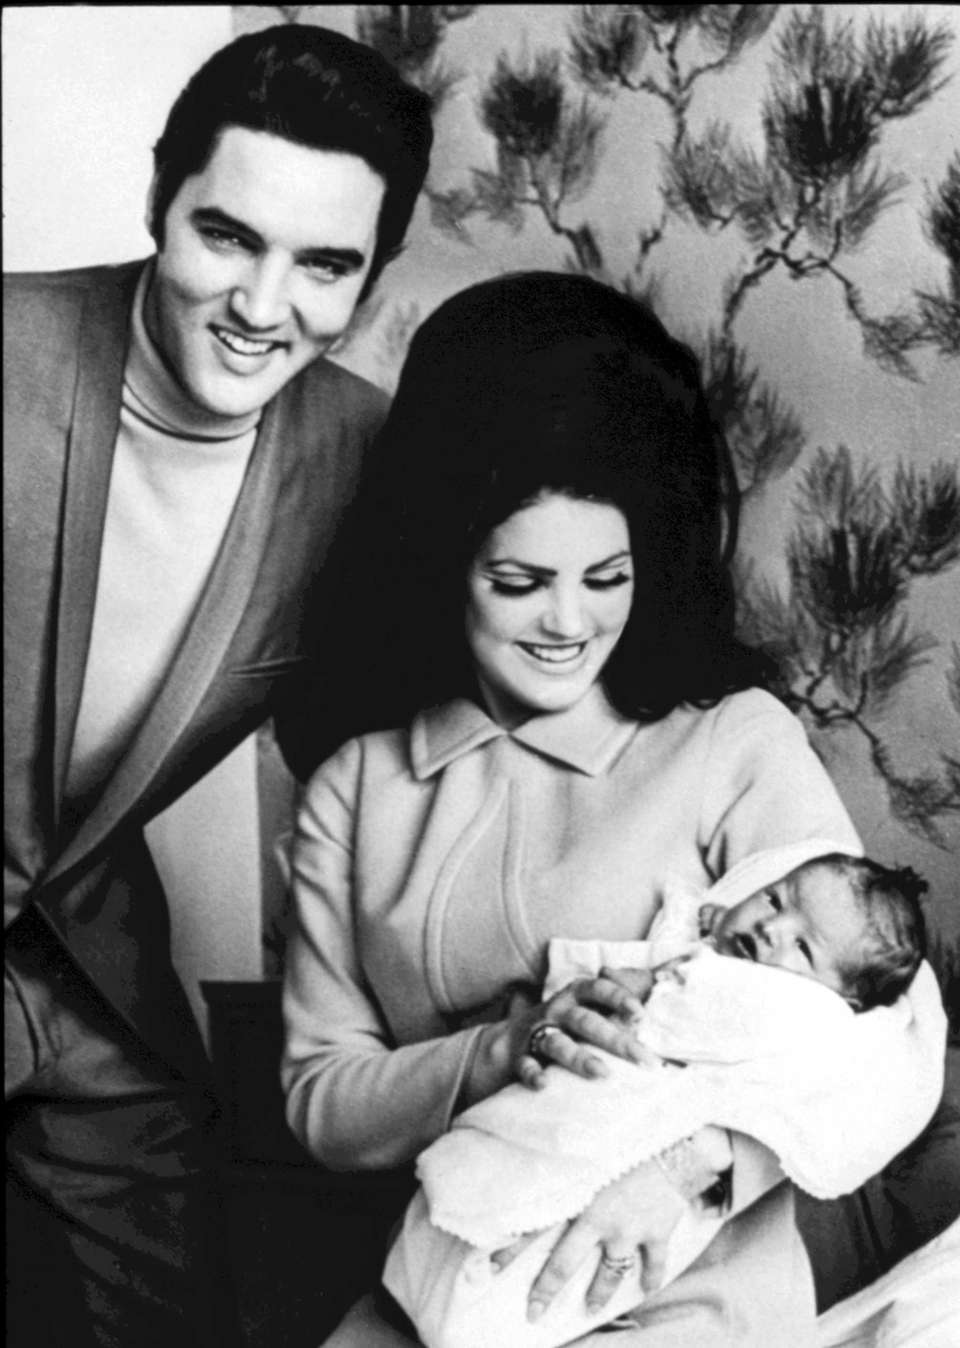 Elvis and Priscilla Presley with baby Lisa Marie